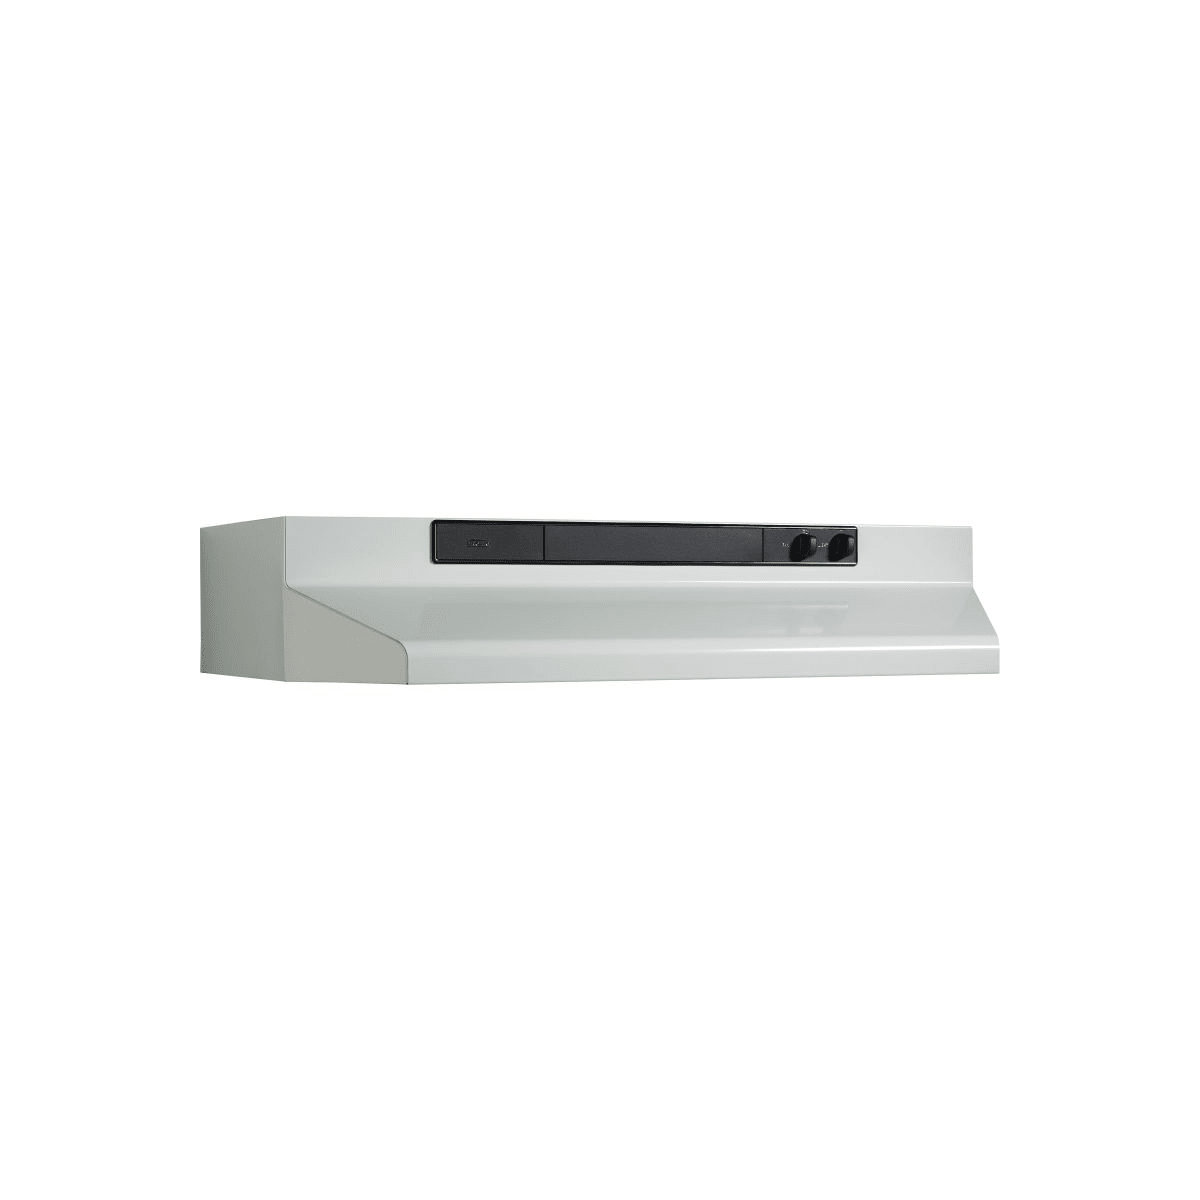 Broan 462401 220 Cfm 24 Wide Steel Under Cabinet Range Hood